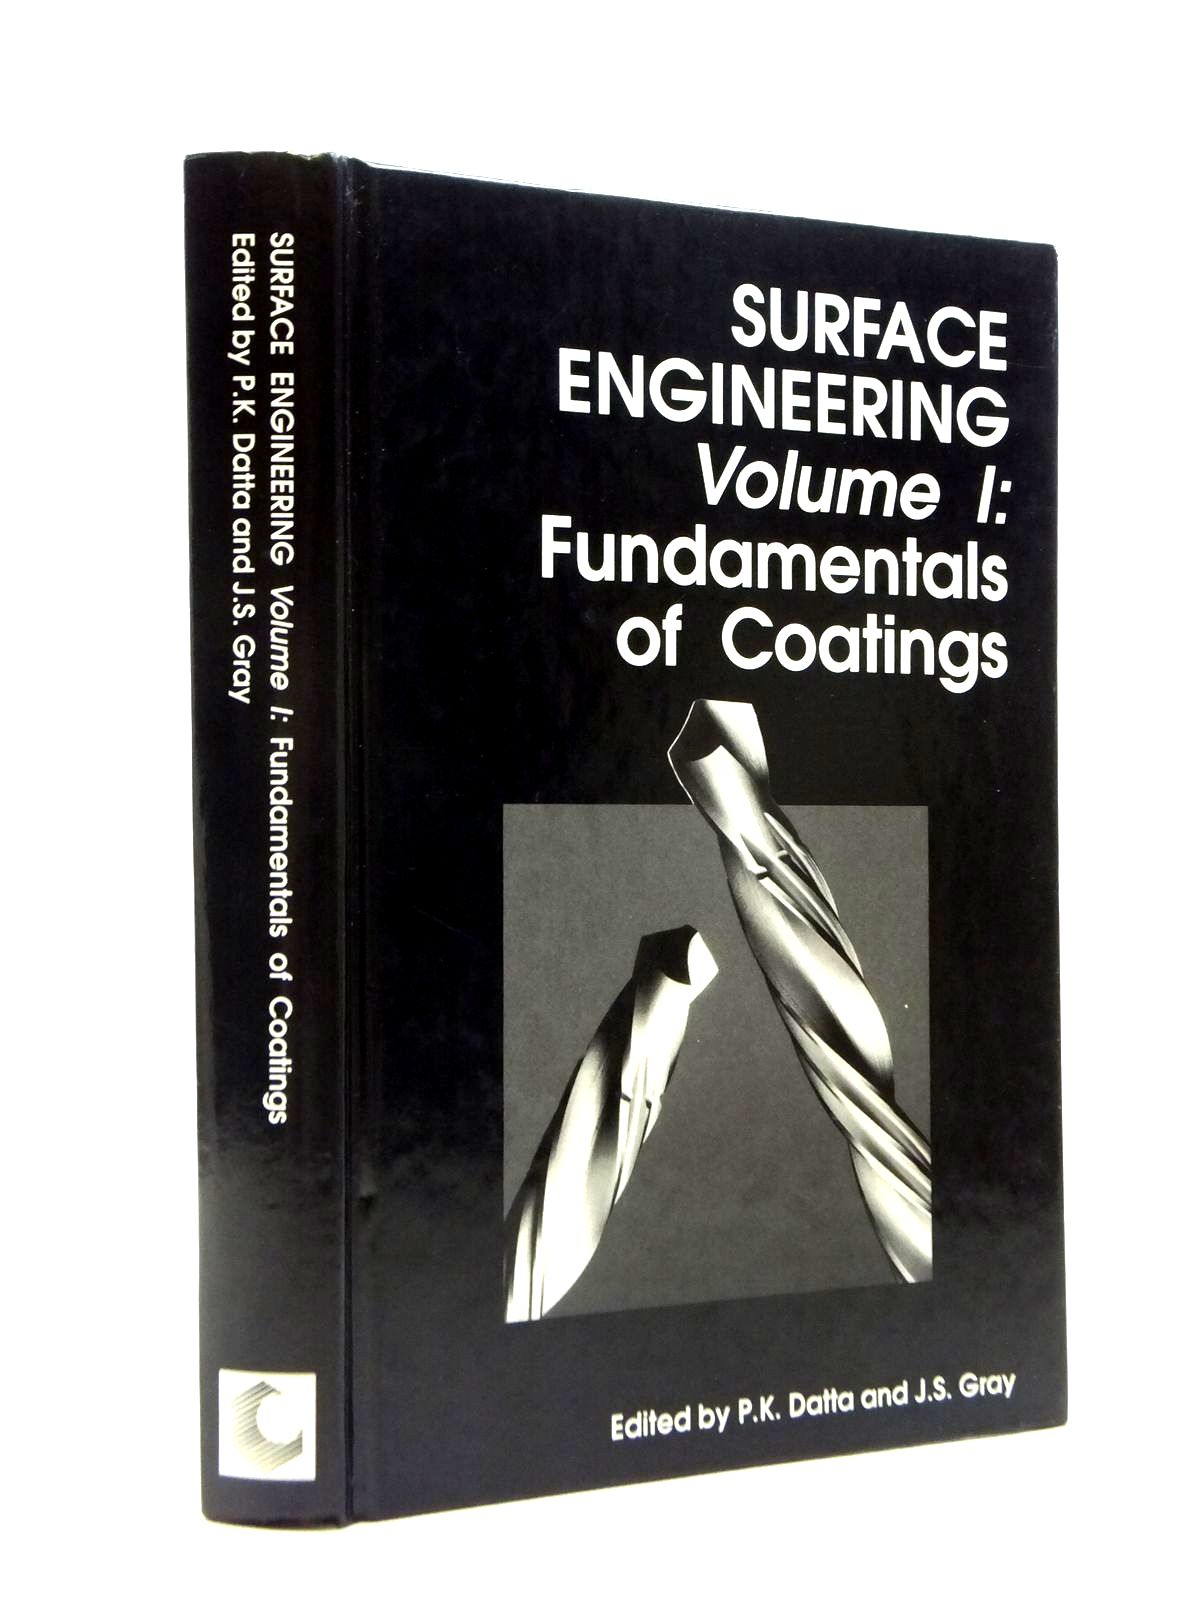 Photo of SURFACE ENGINEERING VOLUME I: FUNDAMENTALS OF COATINGS written by Datta, P.K. Gray, J.S. published by Royal Society Of Chemistry (STOCK CODE: 2120845)  for sale by Stella & Rose's Books